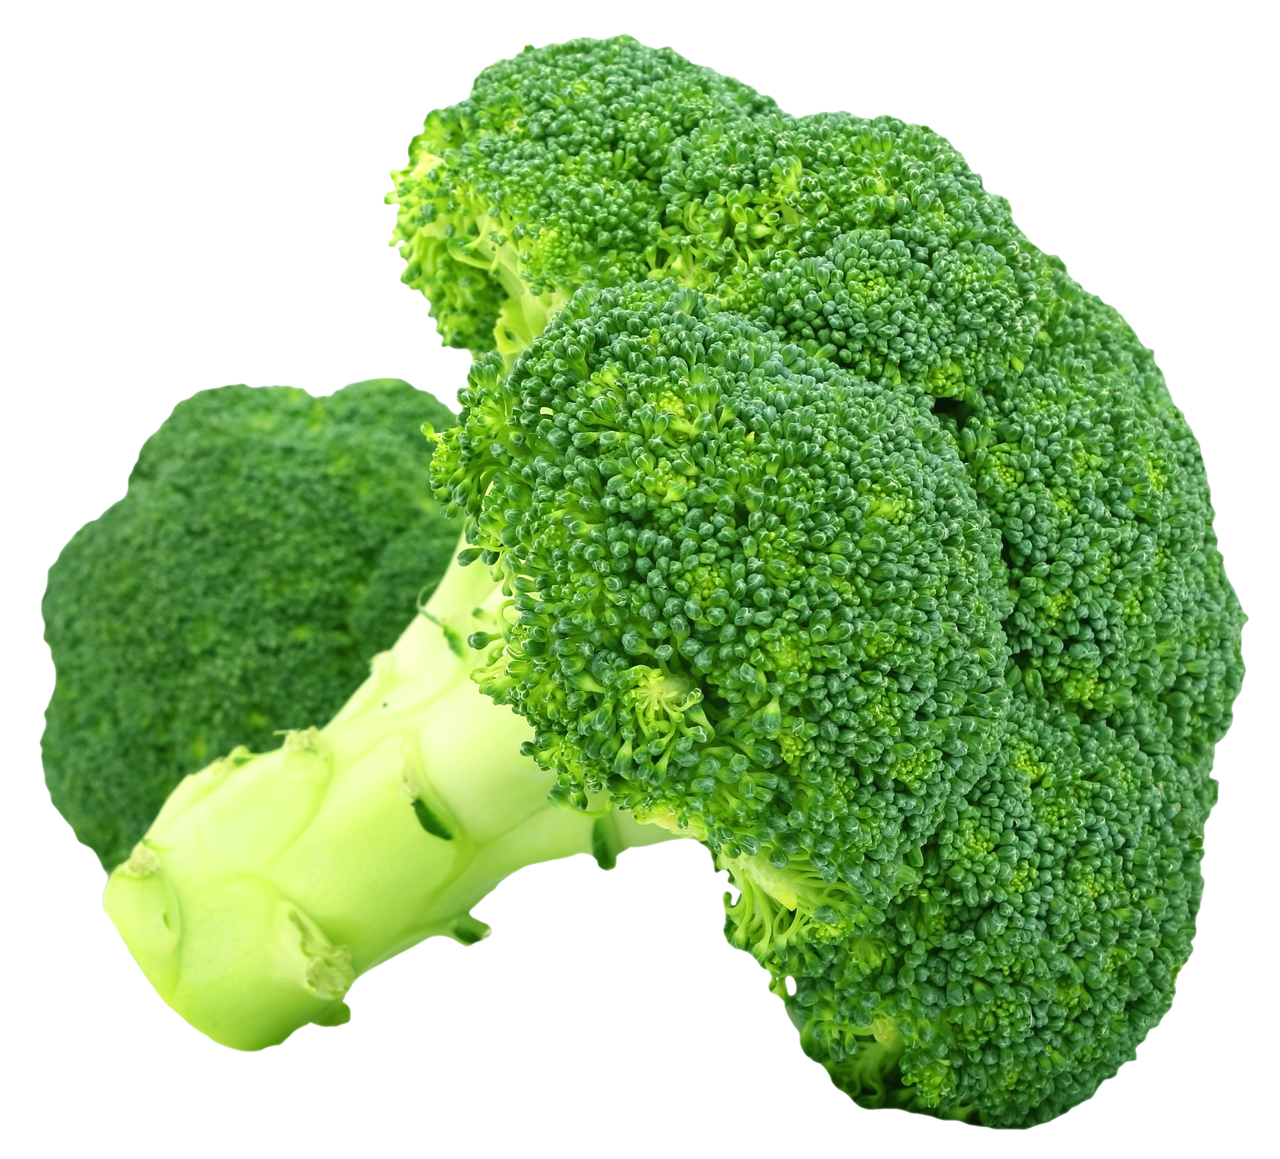 Broccoli PNG Transparent Image - Broccoli PNG